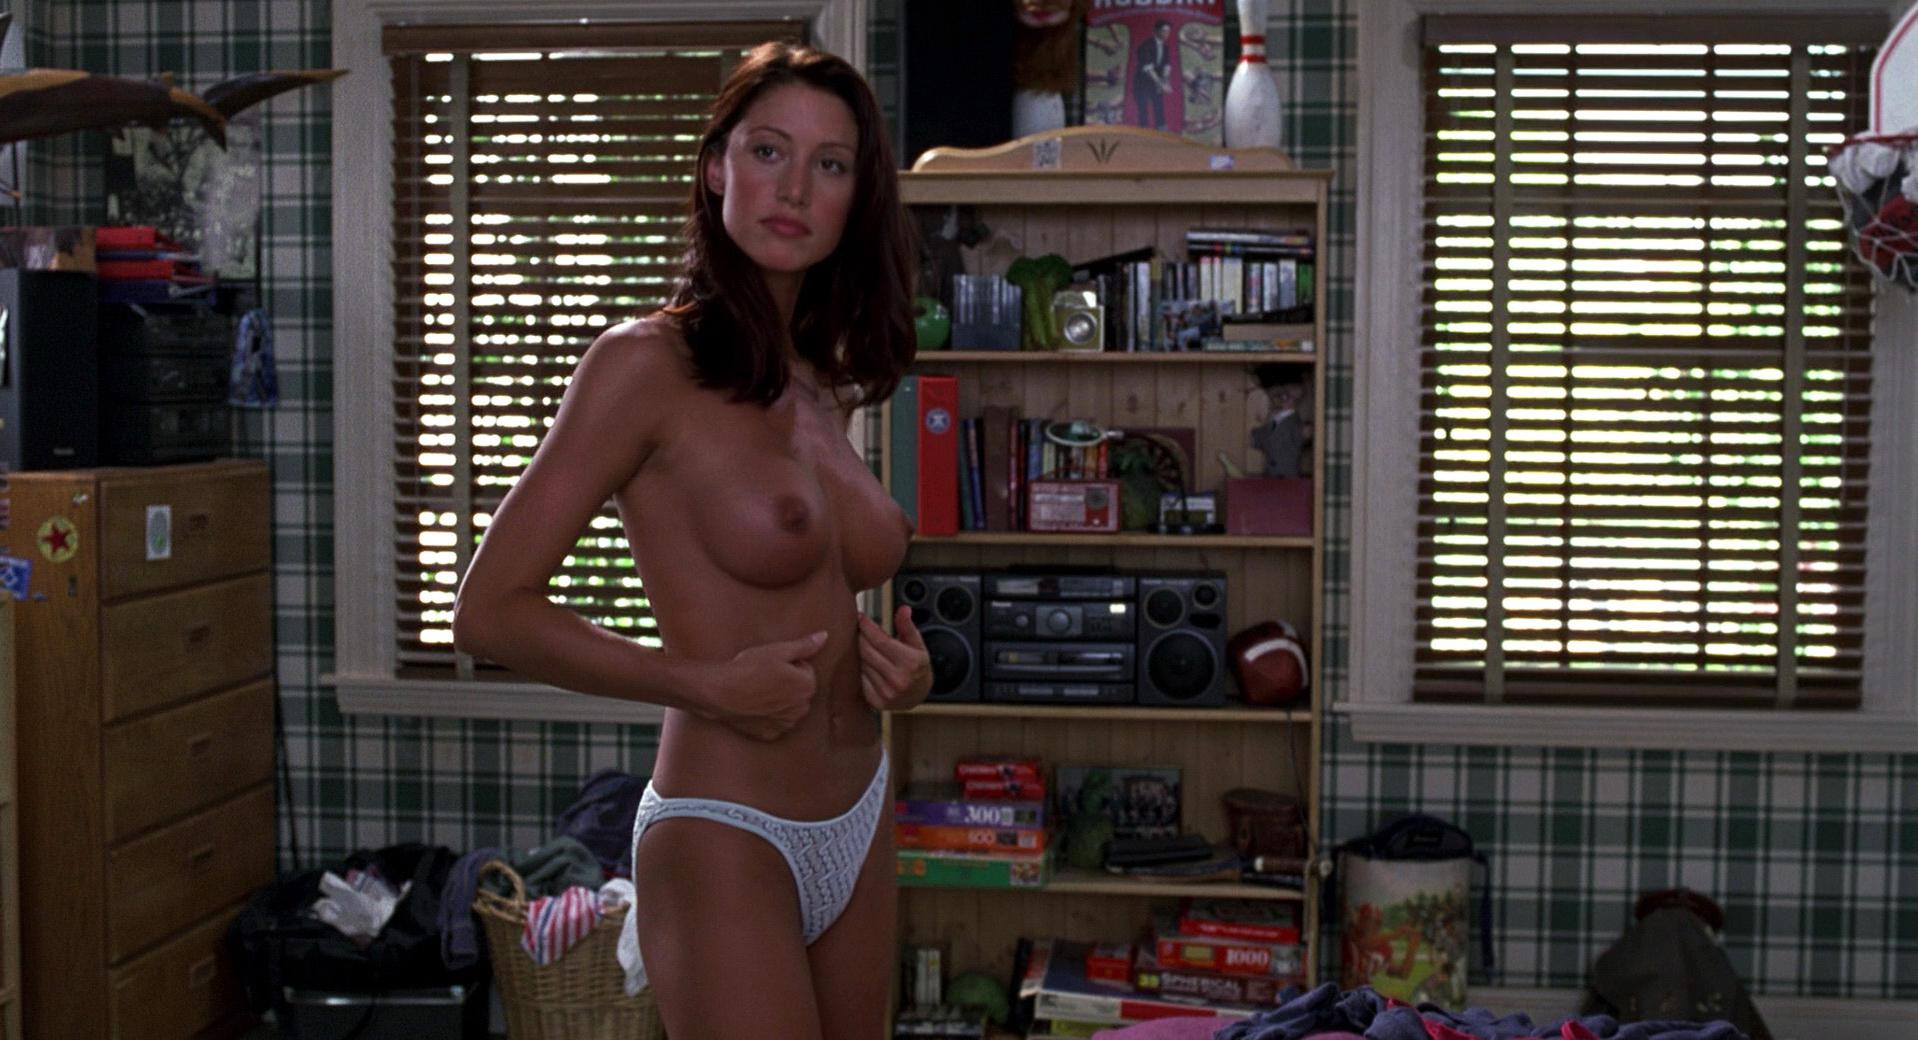 American pie movie nudes